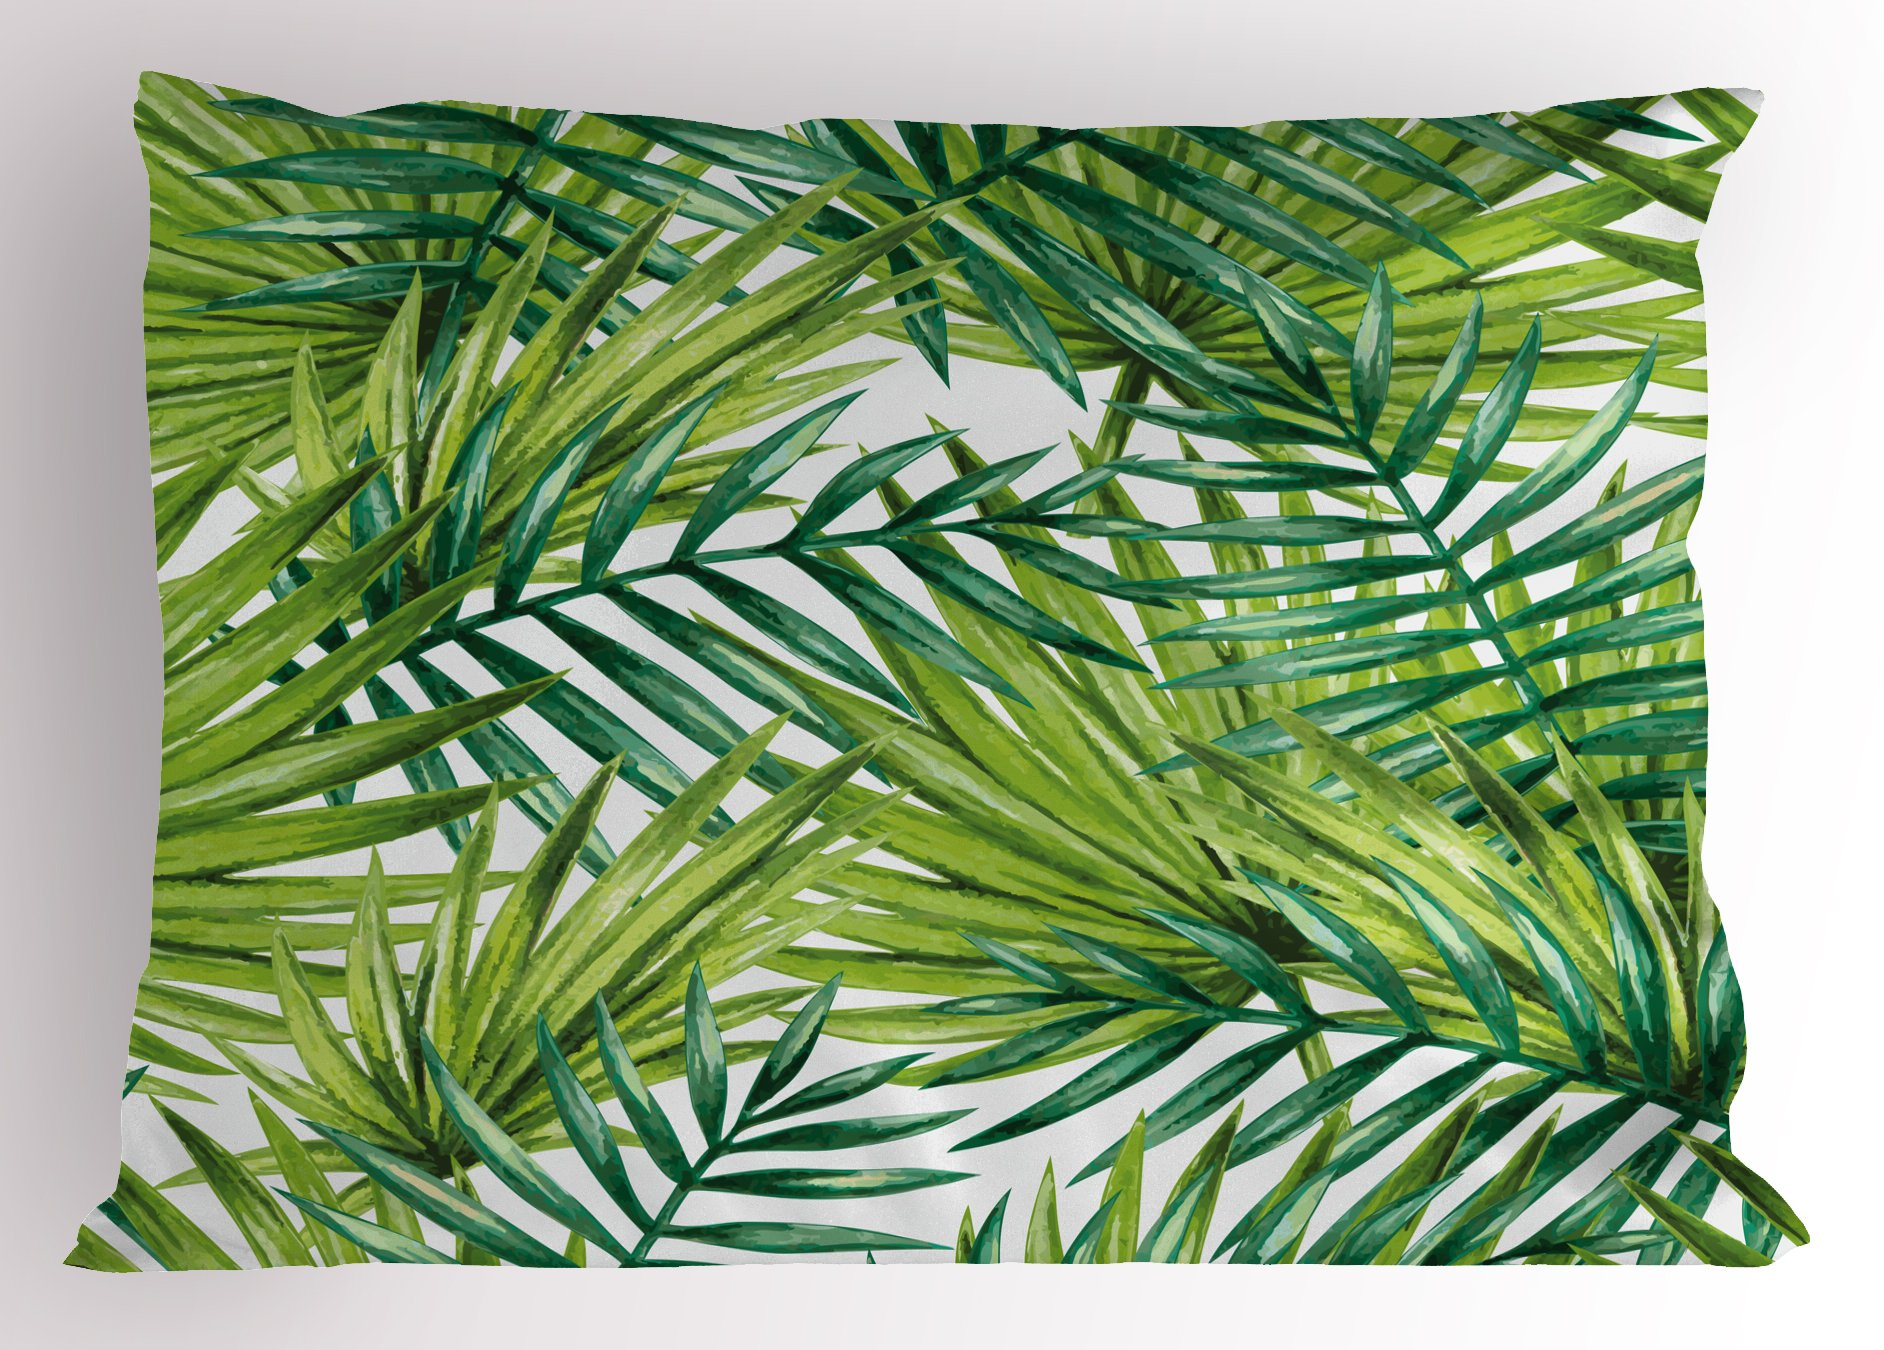 Ambesonne Plant Pillow Sham, Watercolor Tropical Palm Leaves Colorful Illustration Natural Feelings, Decorative Standard Queen Size Printed Pillowcase, 30 X 20 inches, Fern Green Lime Green